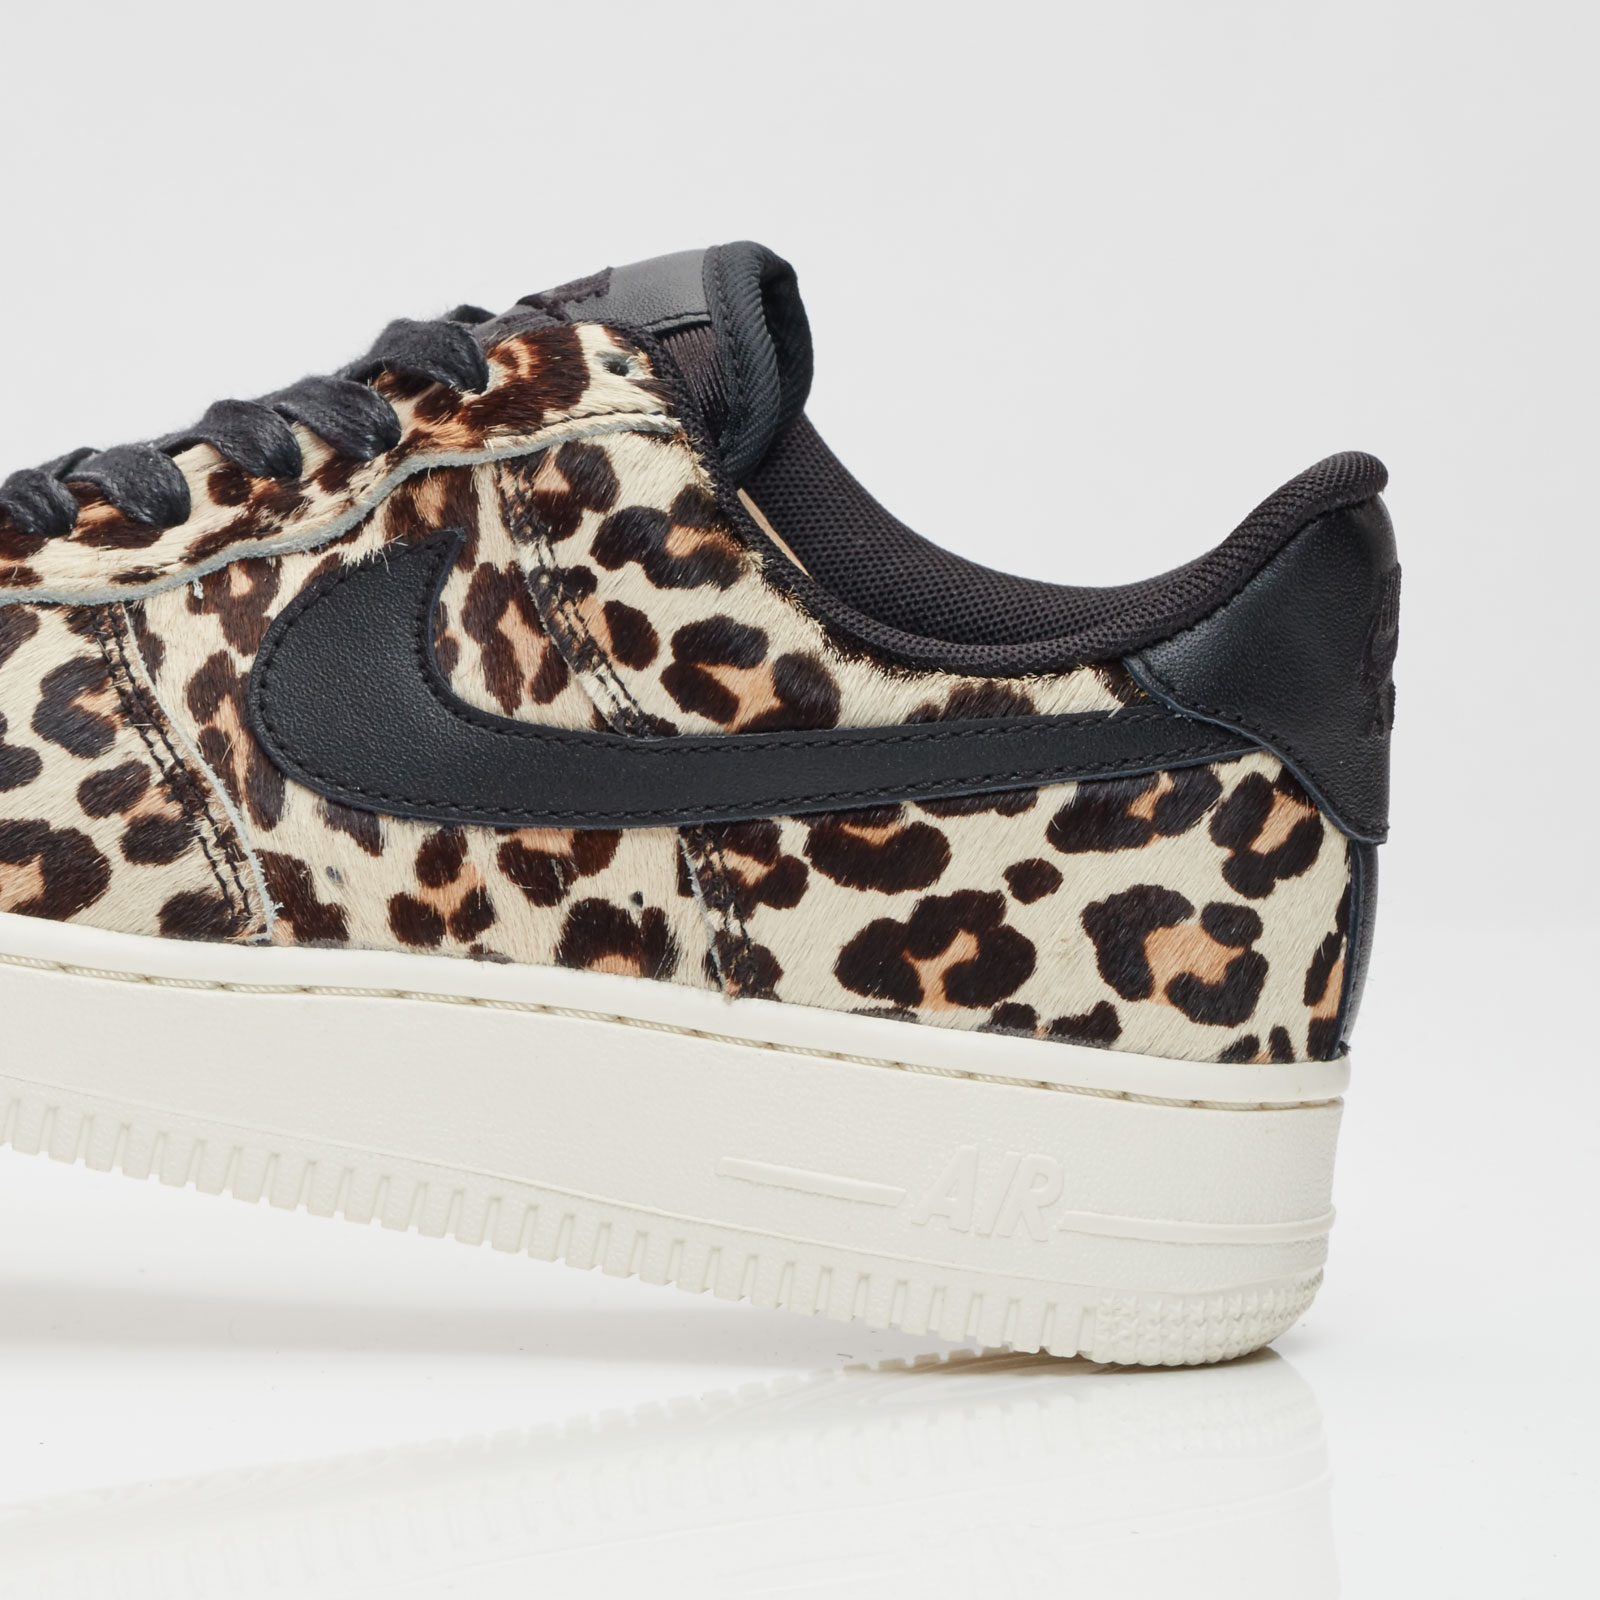 Nike Wmns Air Force 1 07 Lx 898889 004 Sneakersnstuff